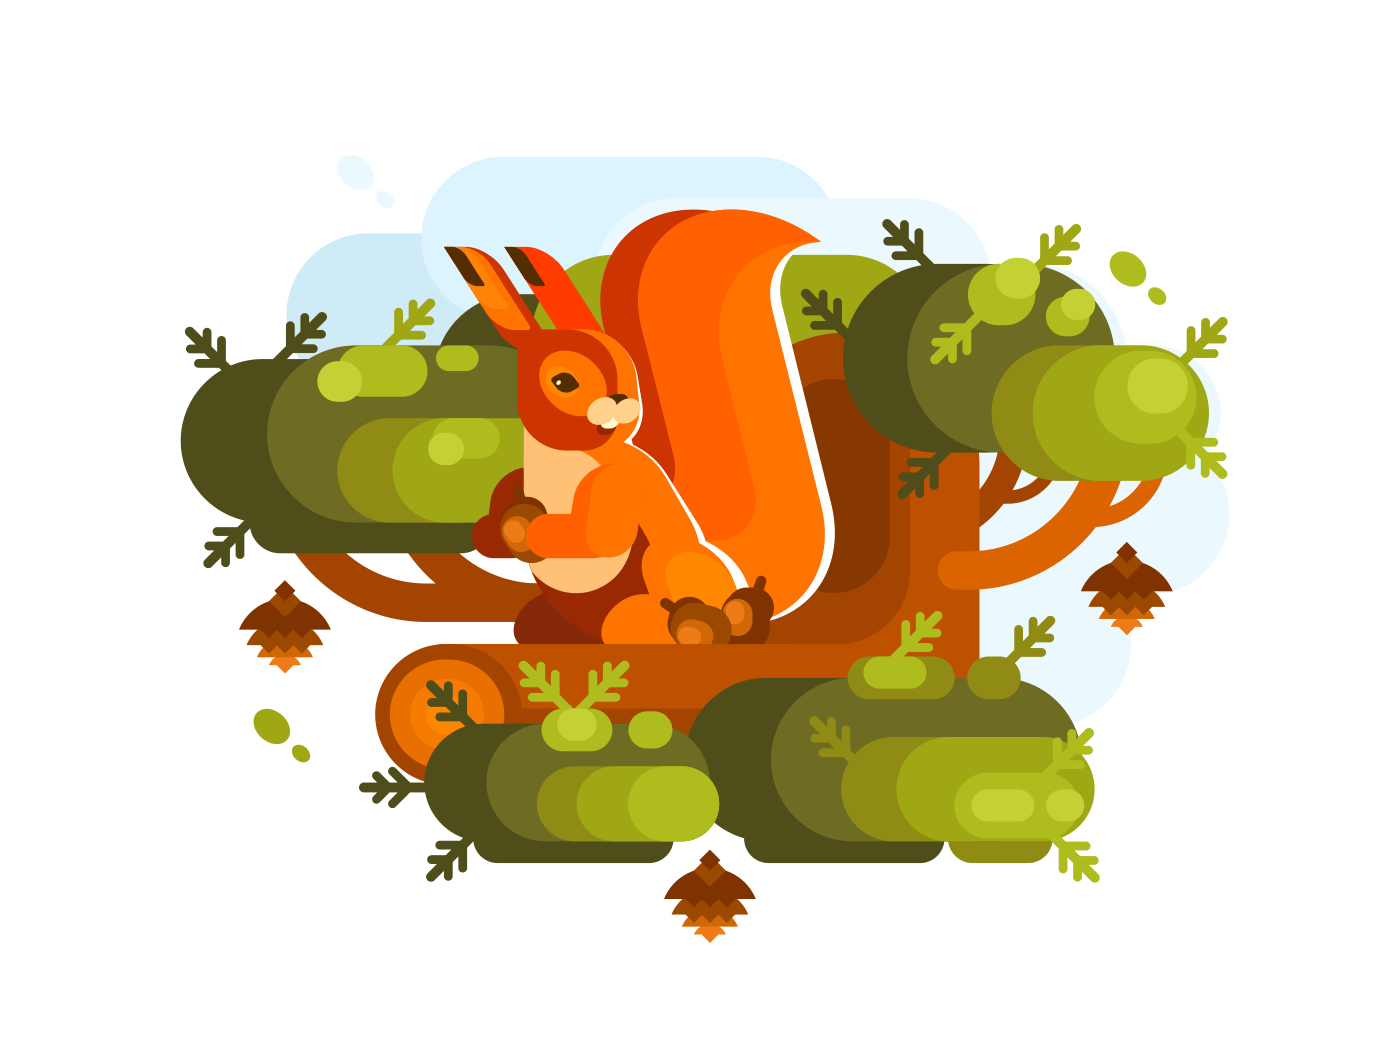 Cartoon squirrel with acorn sitting on branch of green tree. Vector illustration